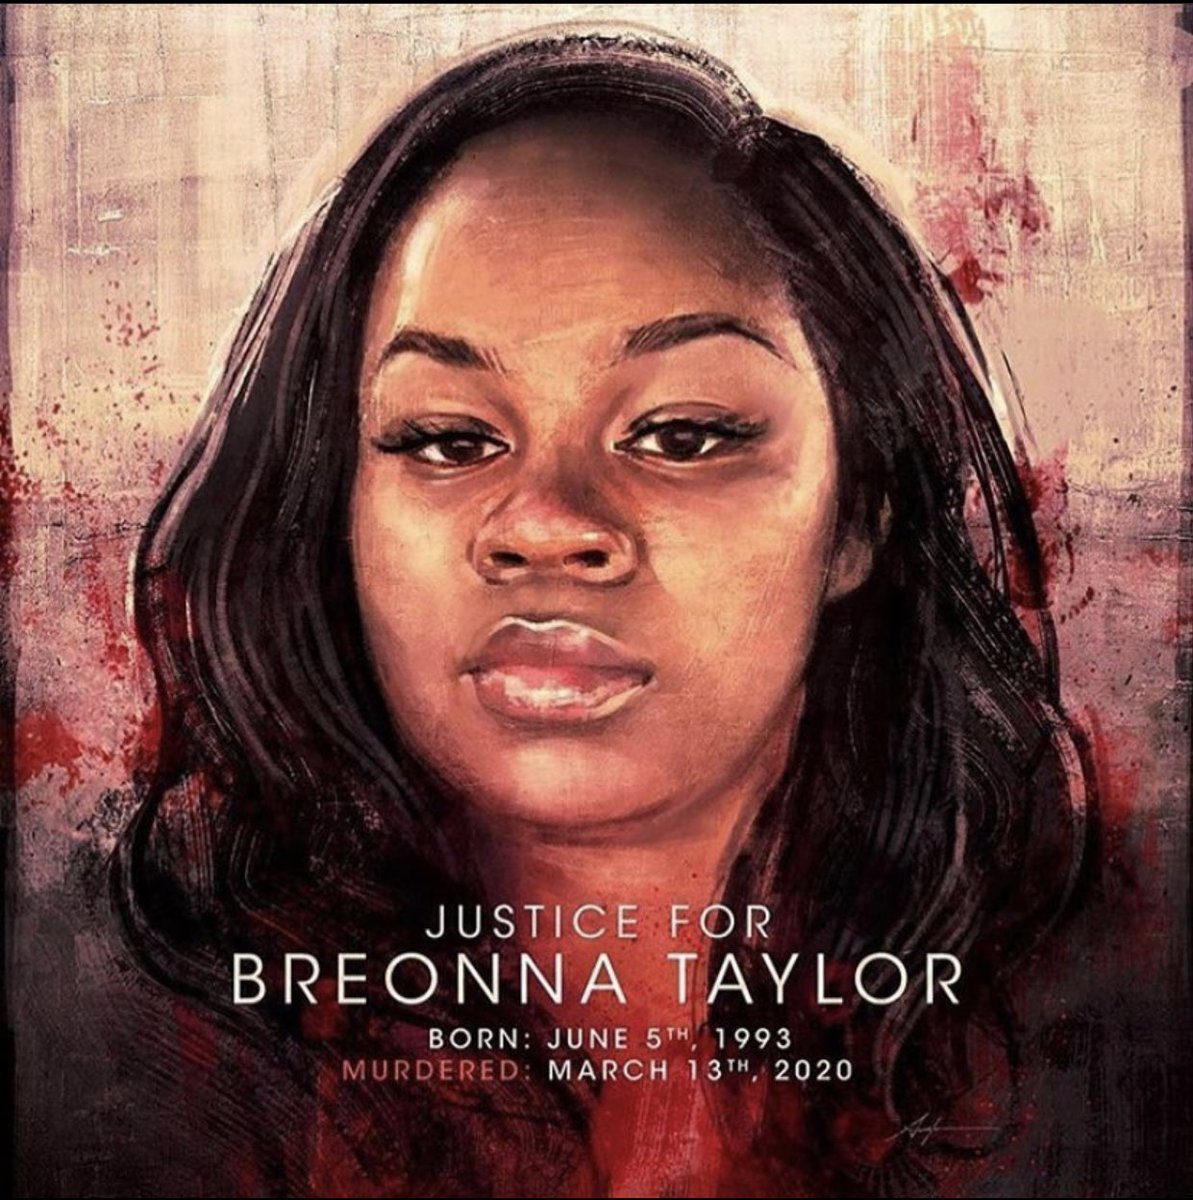 Benjamin Dixon On Twitter Happybirthdaybreonnataylor Justiceforbreonnataylor Weveseenenough If Anyone Knows Who The Artist Is Or Their Social Media Accounts Please Reply Below So I Can Give Them Their Credit For This Amazing